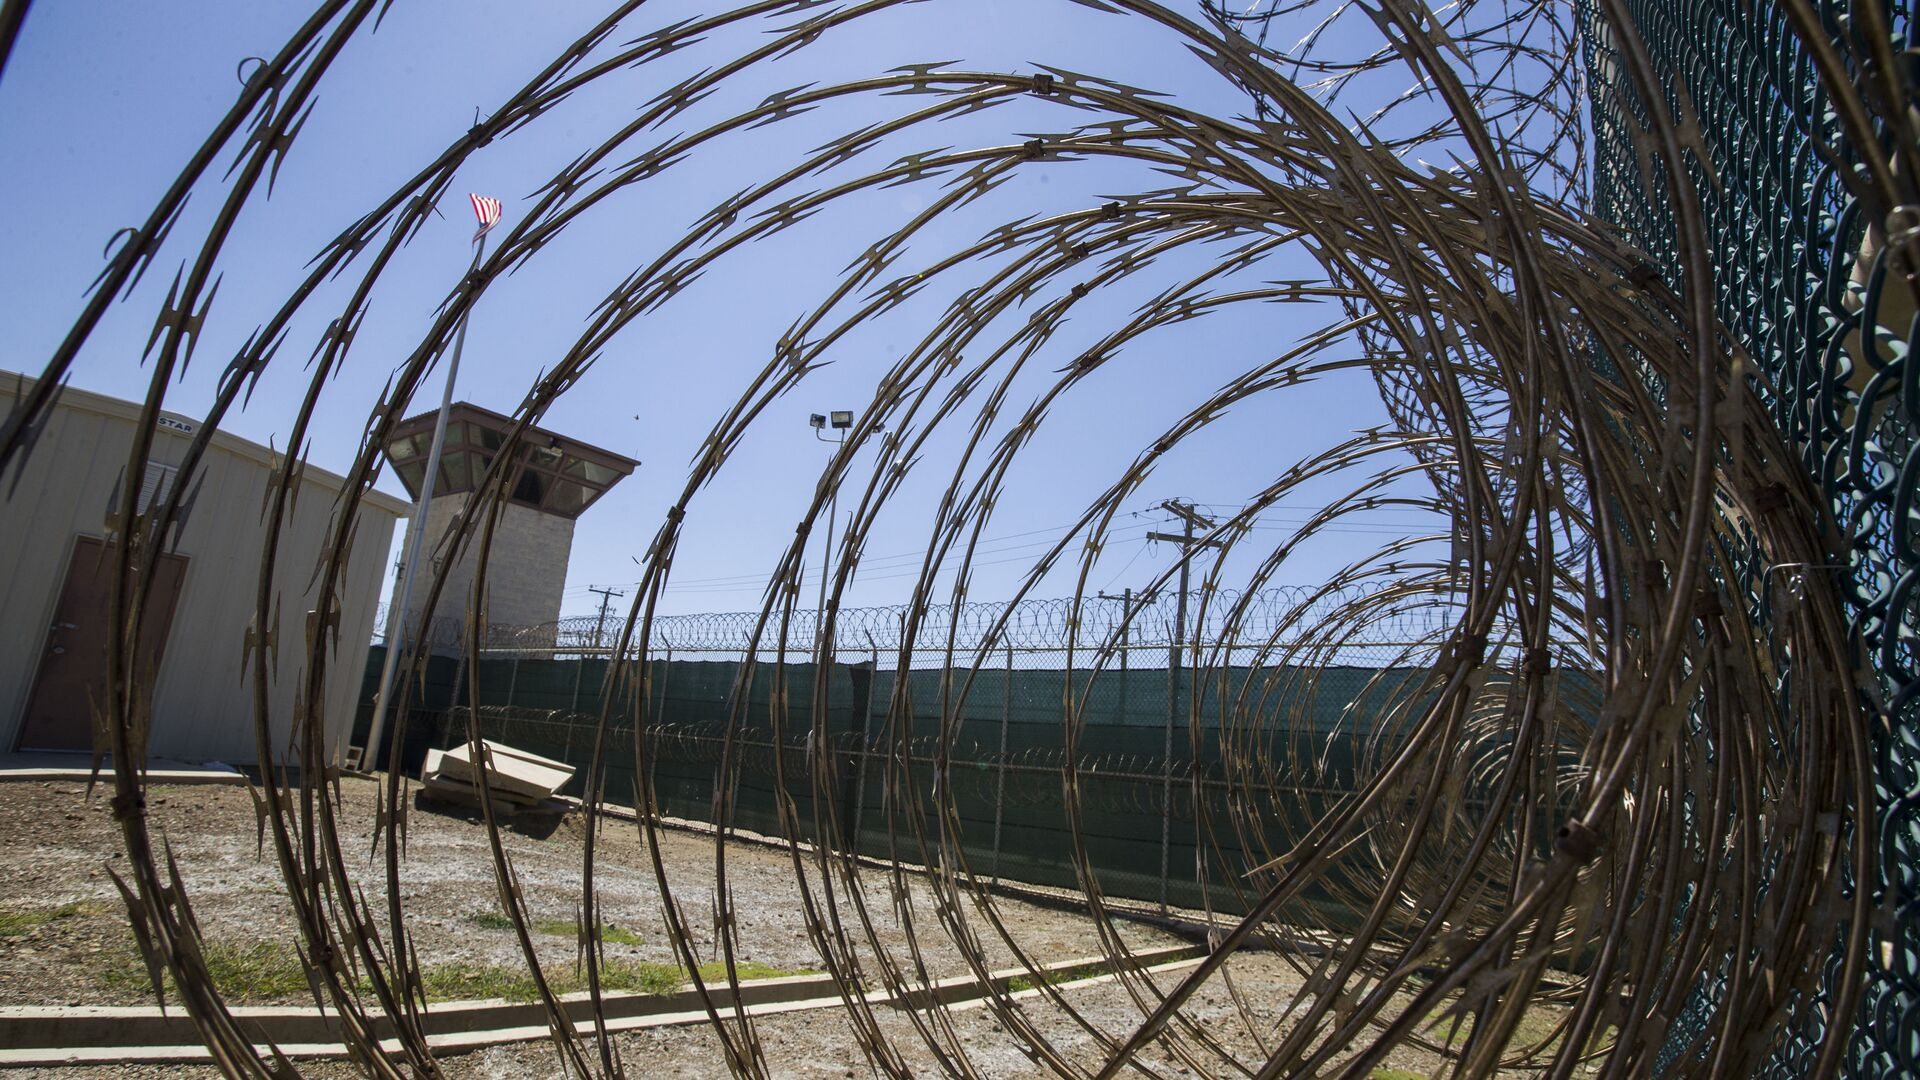 In this Wednesday, April 17, 2019 file photo reviewed by U.S. military officials, the control tower is seen through the razor wire inside the Camp VI detention facility in Guantanamo Bay Naval Base, Cuba. - Sputnik International, 1920, 07.10.2021